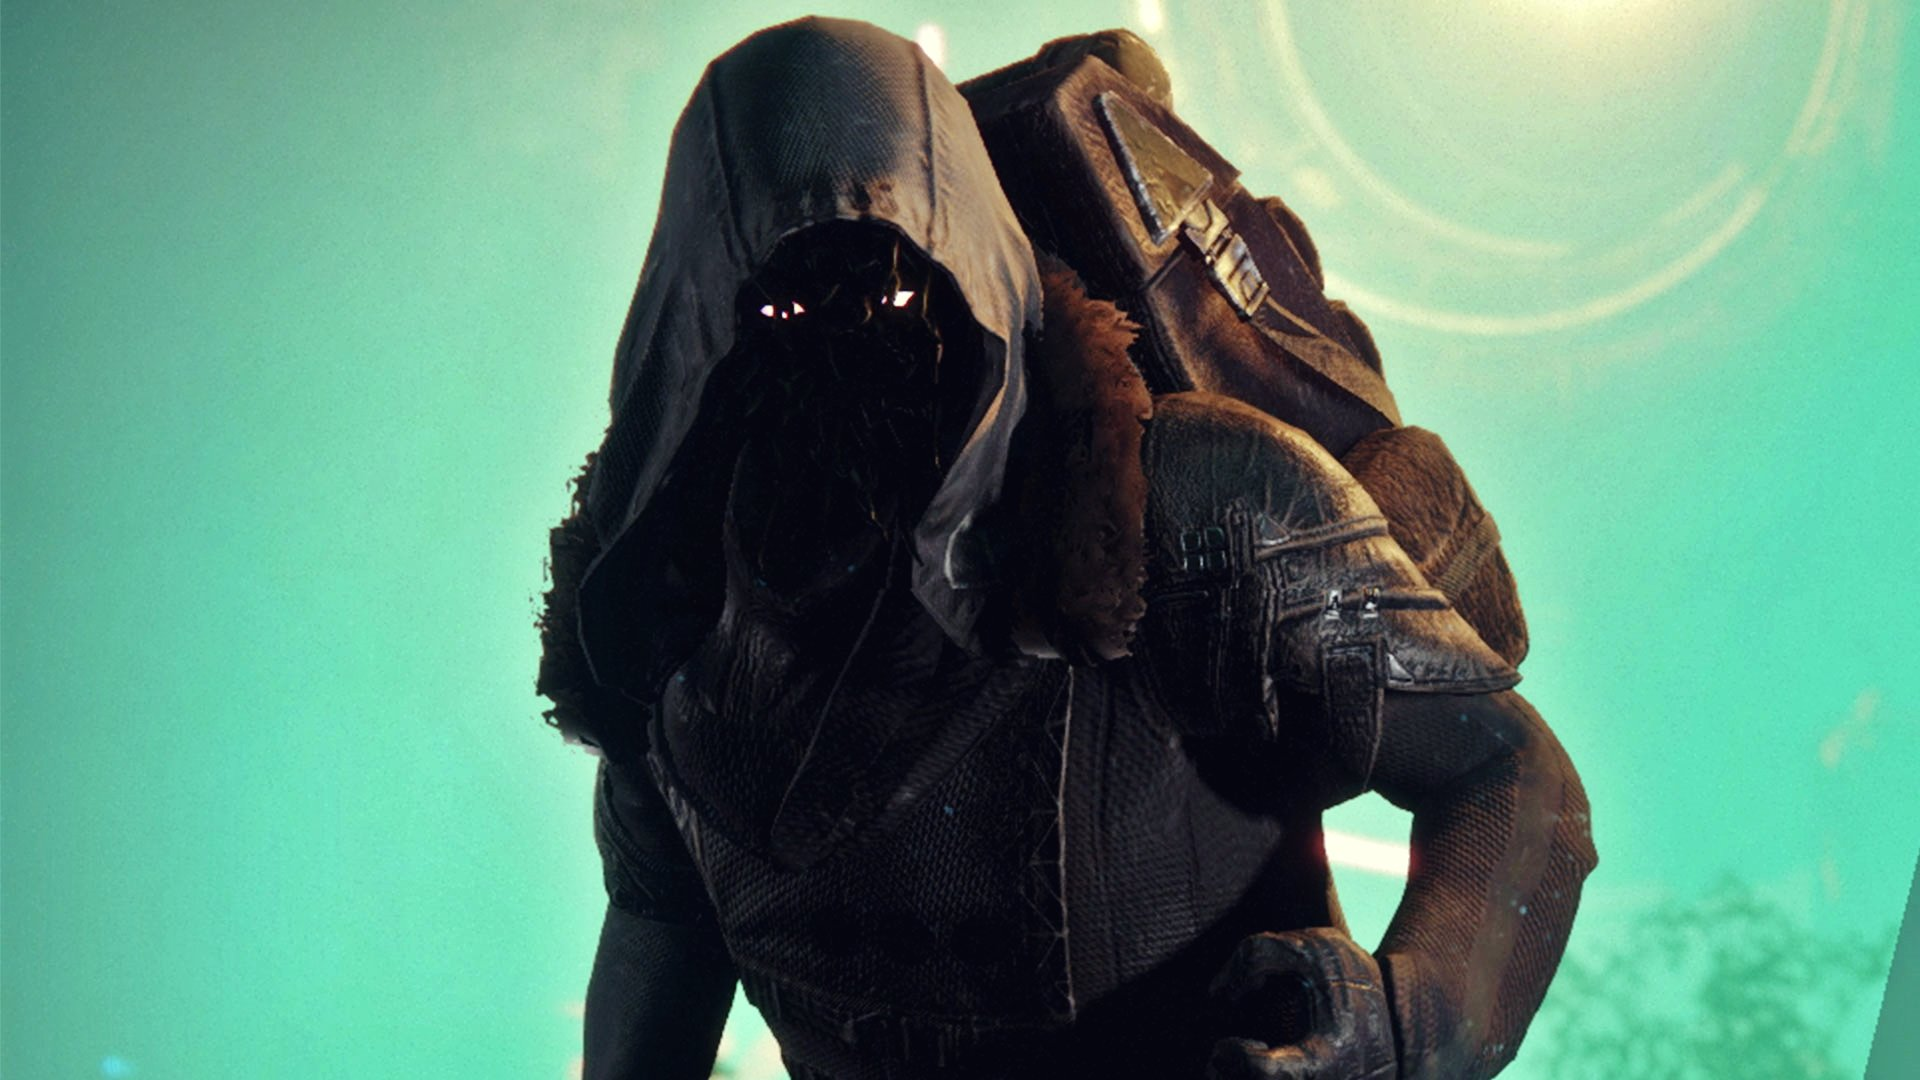 Xur can be found inside the Hangar in the Tower during the week of May 10 in Destiny 2.